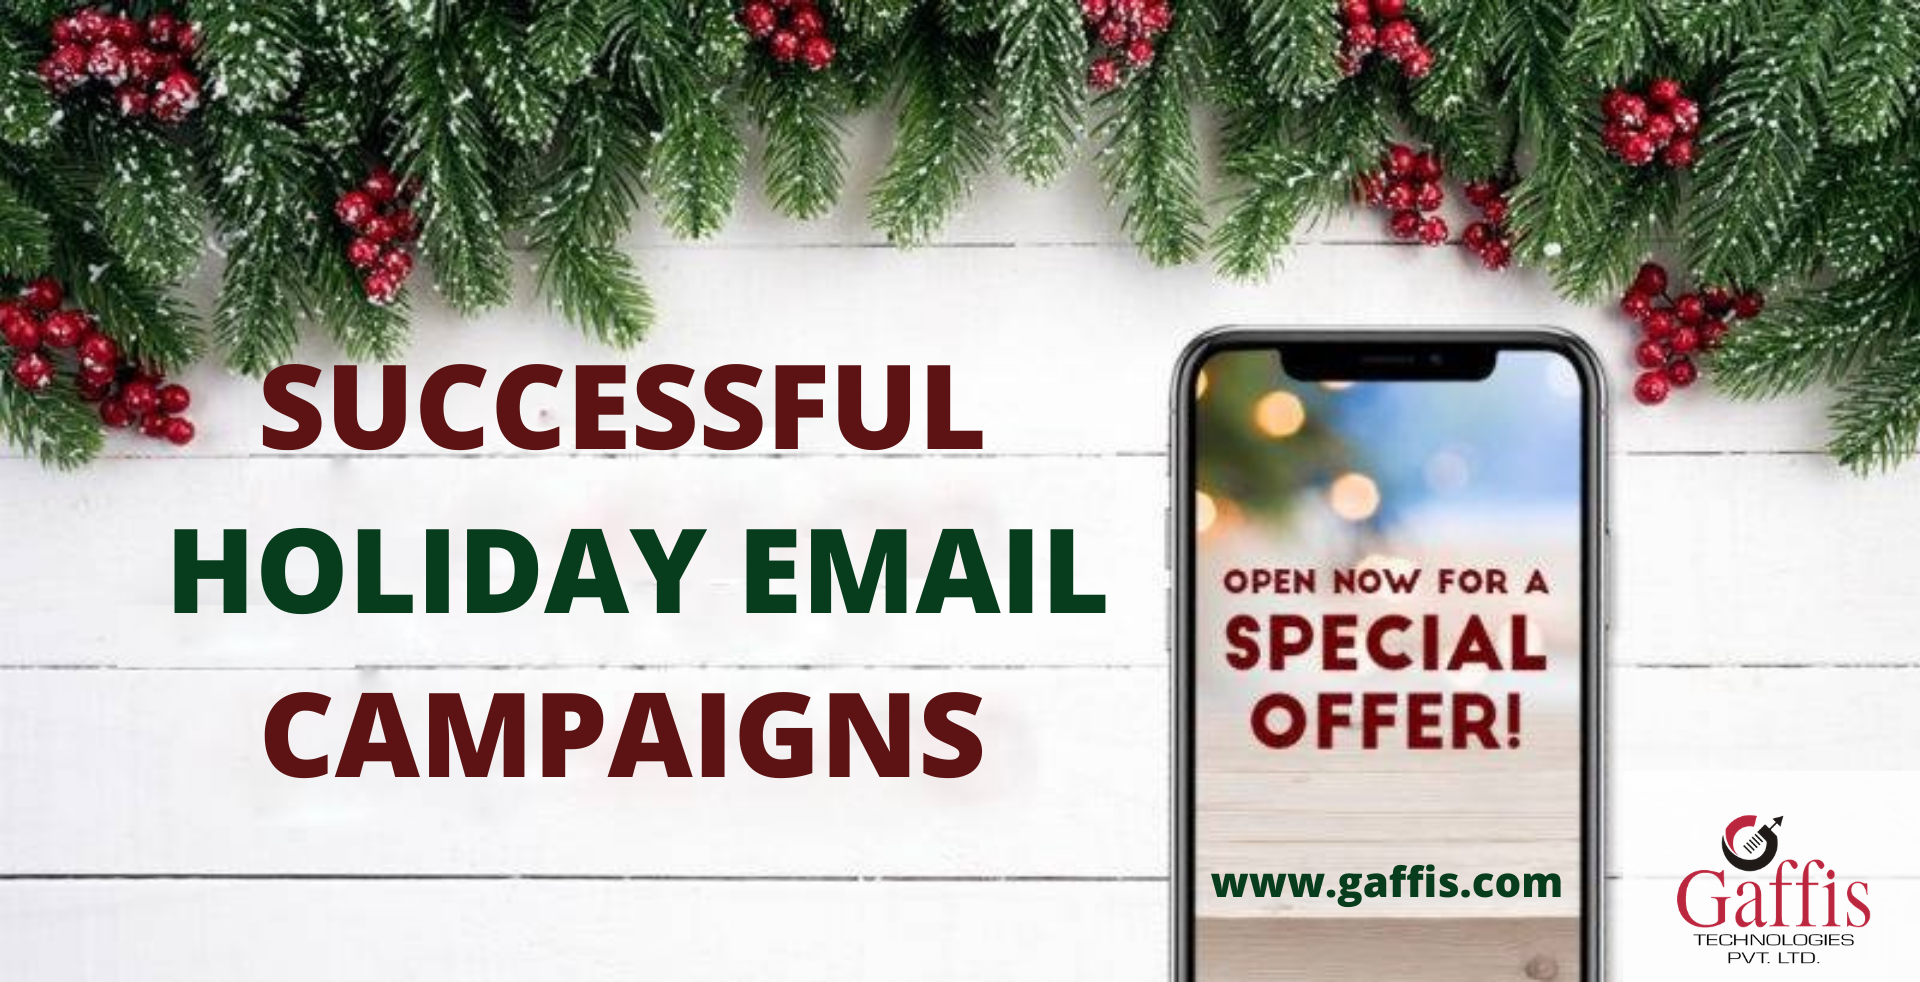 Successful Holiday Email Marketing Best Practices for 2020